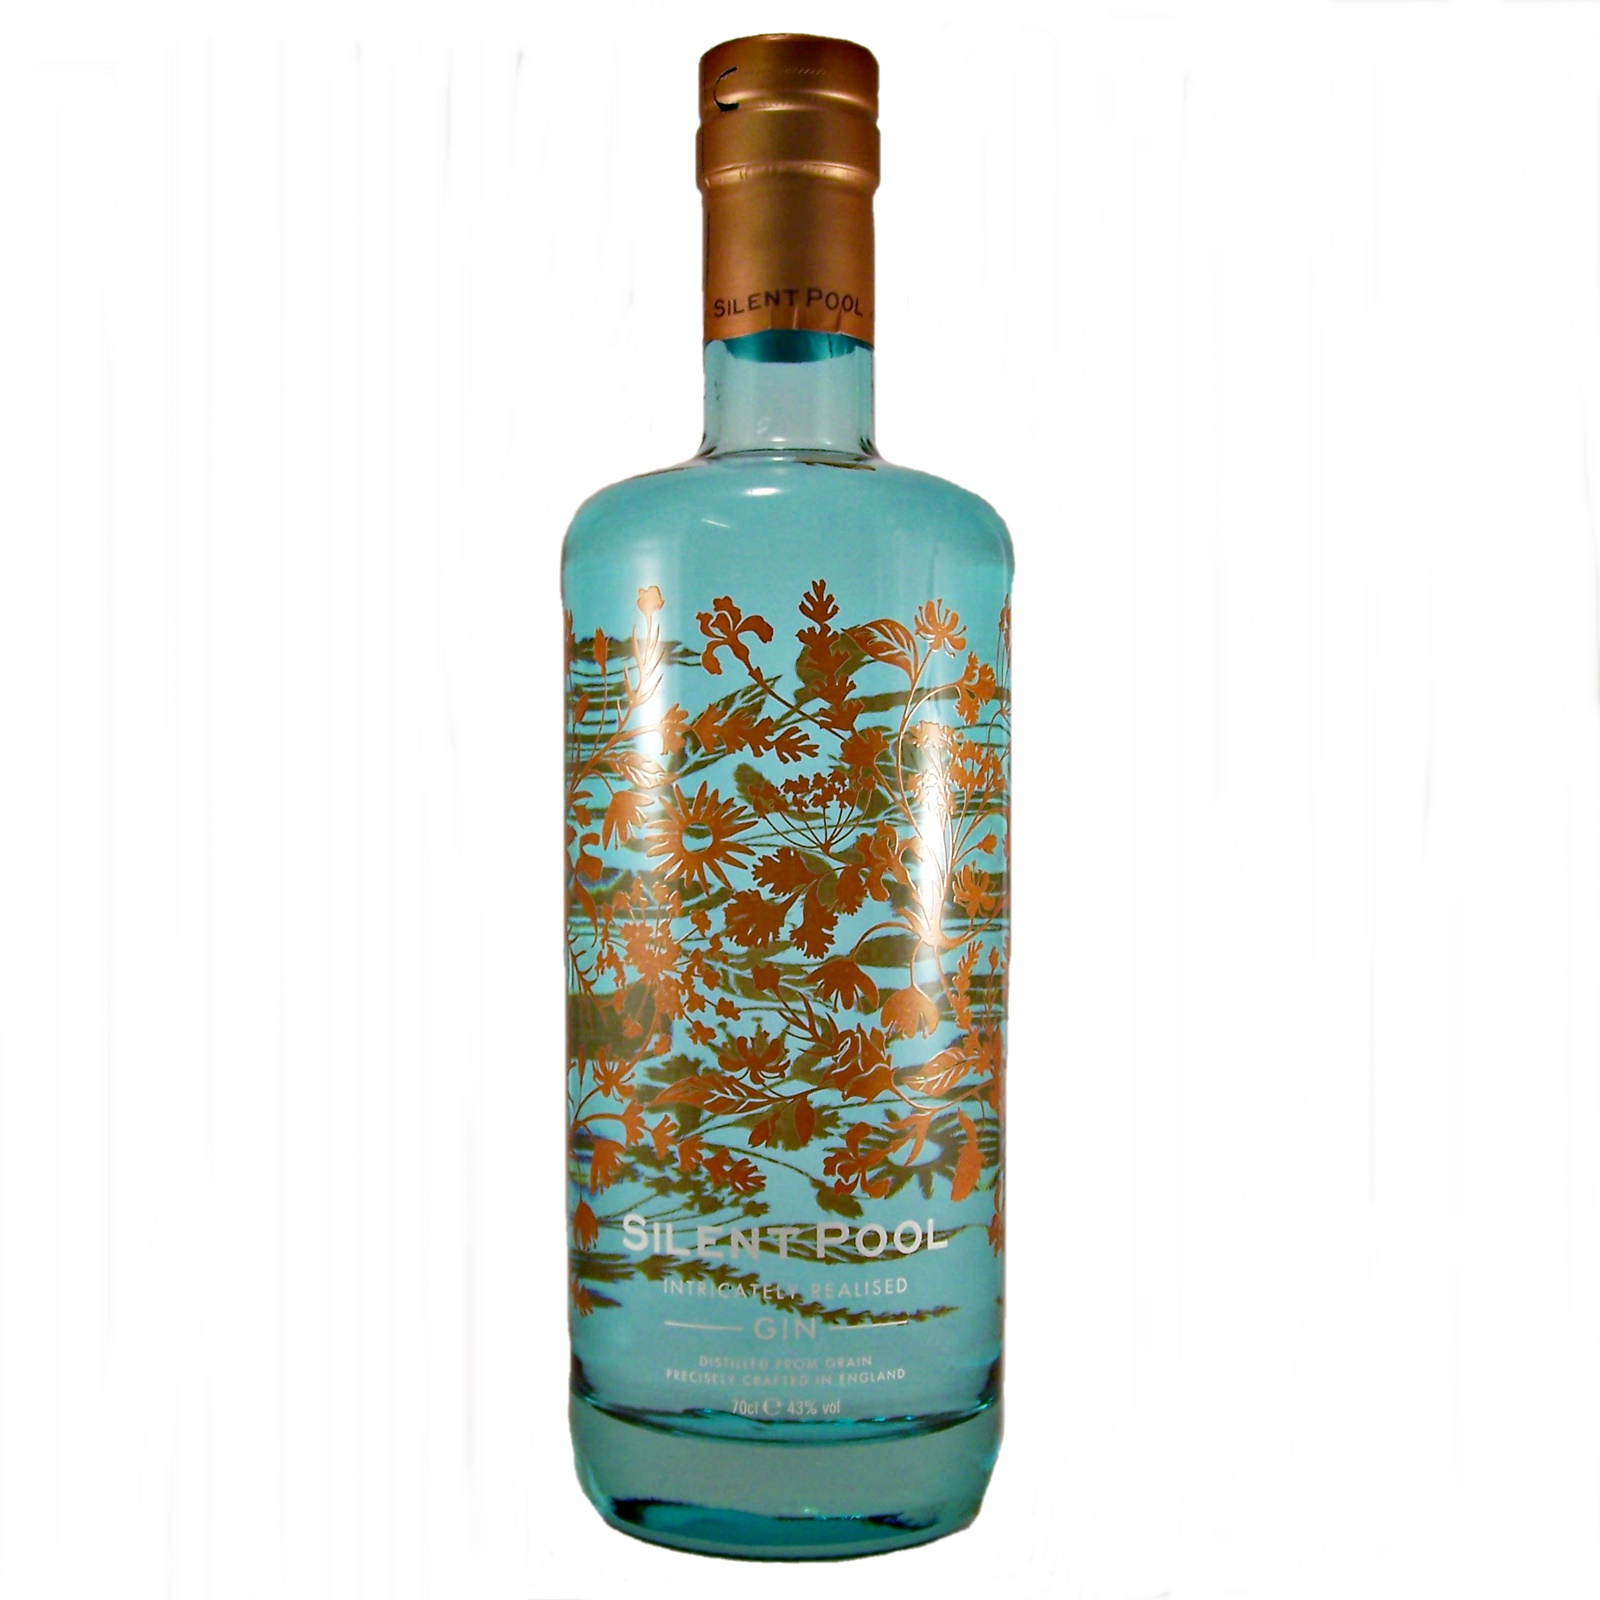 Silent pool gin english distillery small batch - Silent pool gin ...